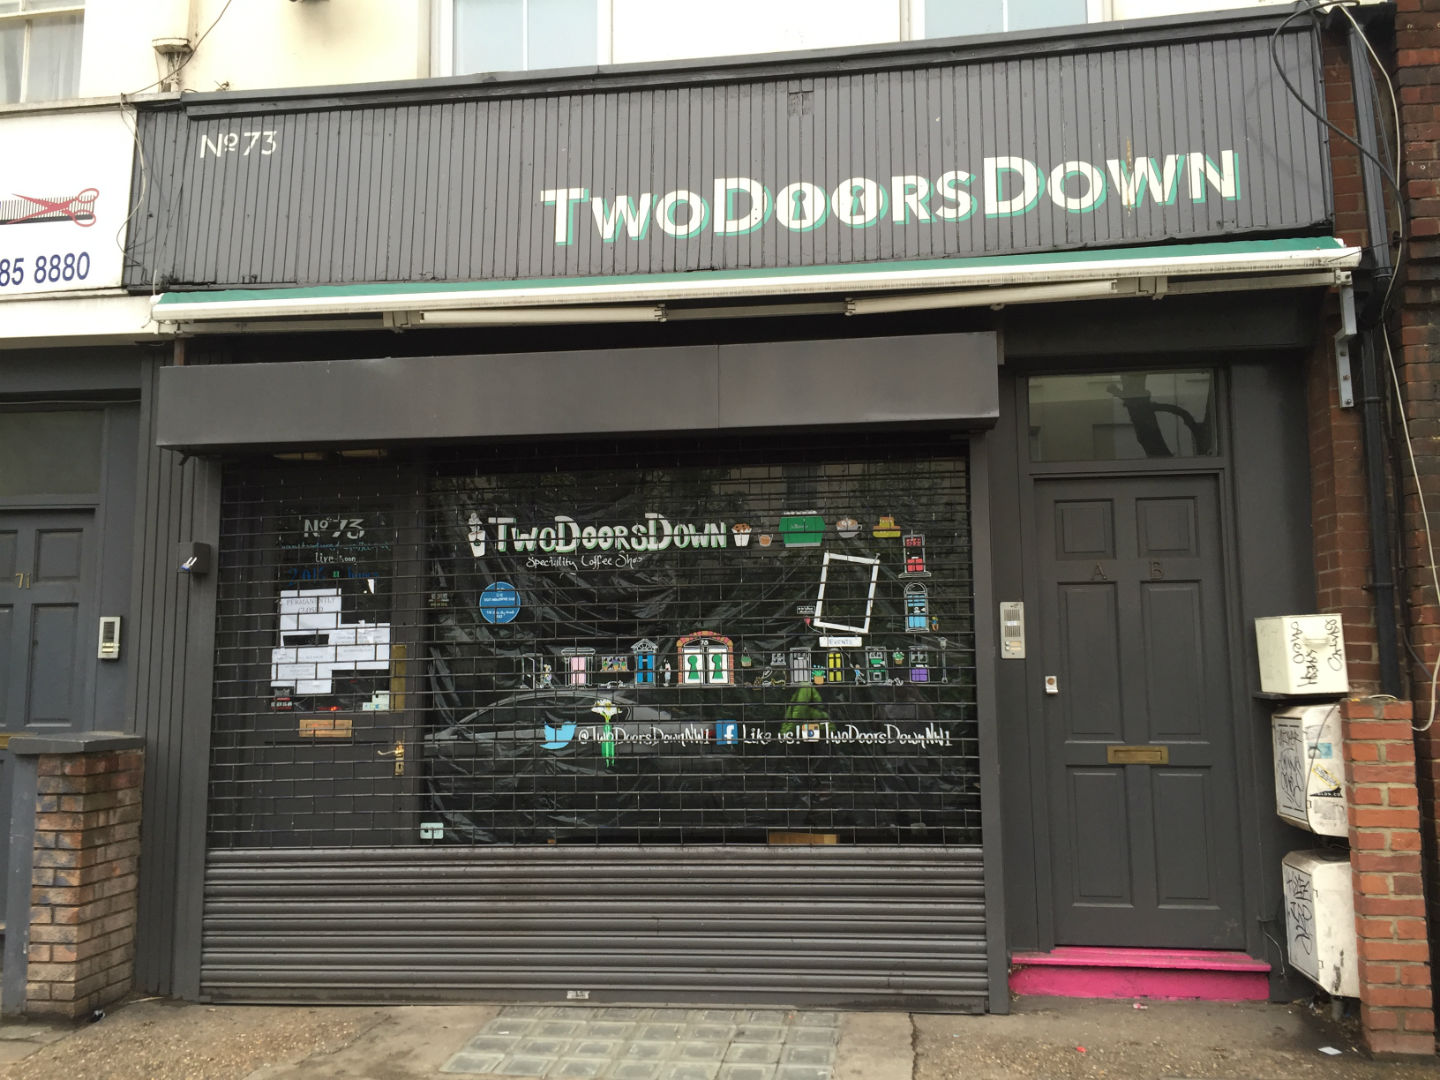 Closed down permanently: Two Doors Down